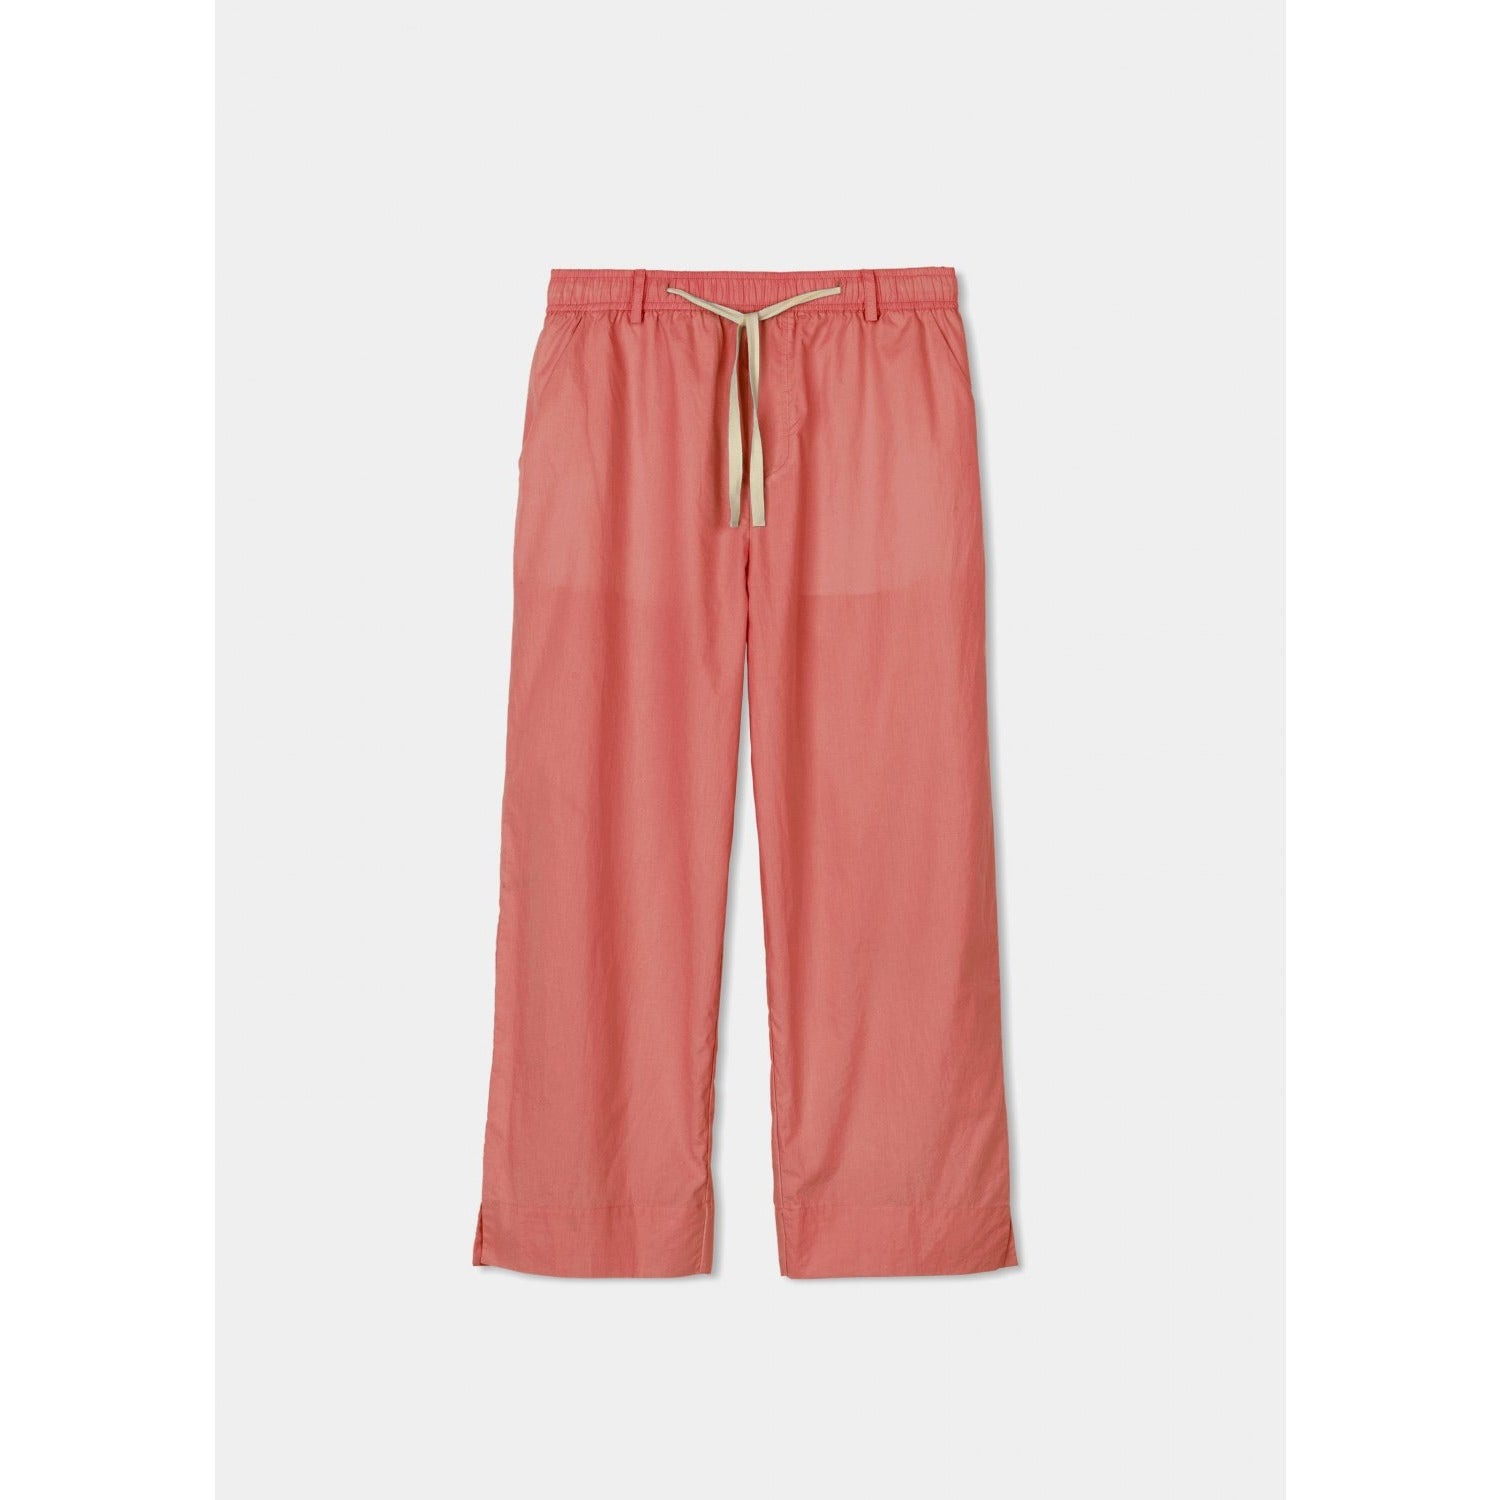 Light Coral Franka Pant